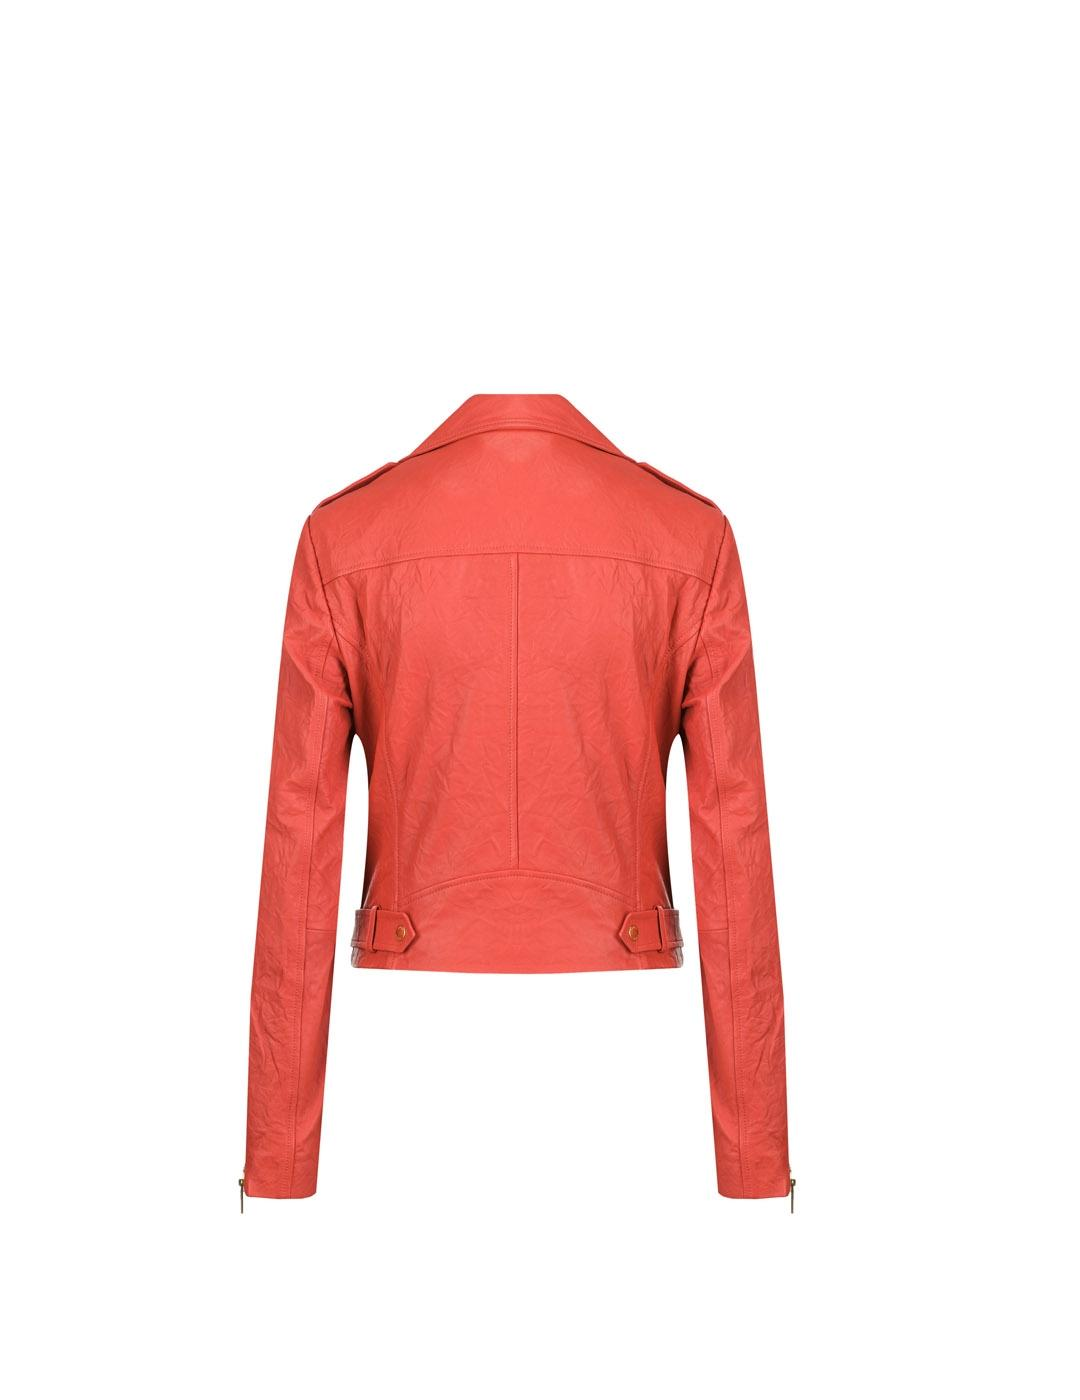 Cazadora Michael kors sangria Leather Jacket